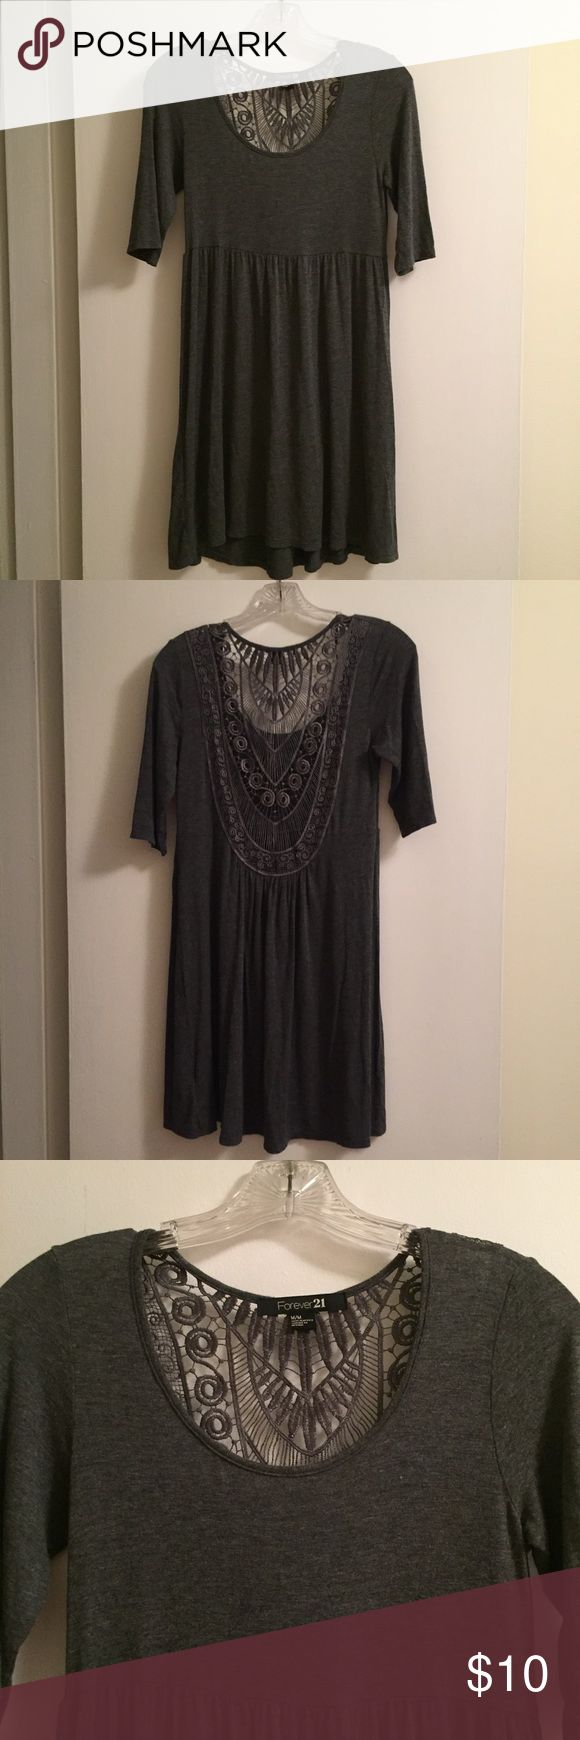 Grey Macrame Dress Grey dress with macrame back and 3/4 sleeves. Soft and comfy, perfect for festival season! Only worn once, in excellent condition. Forever 21 Dresses